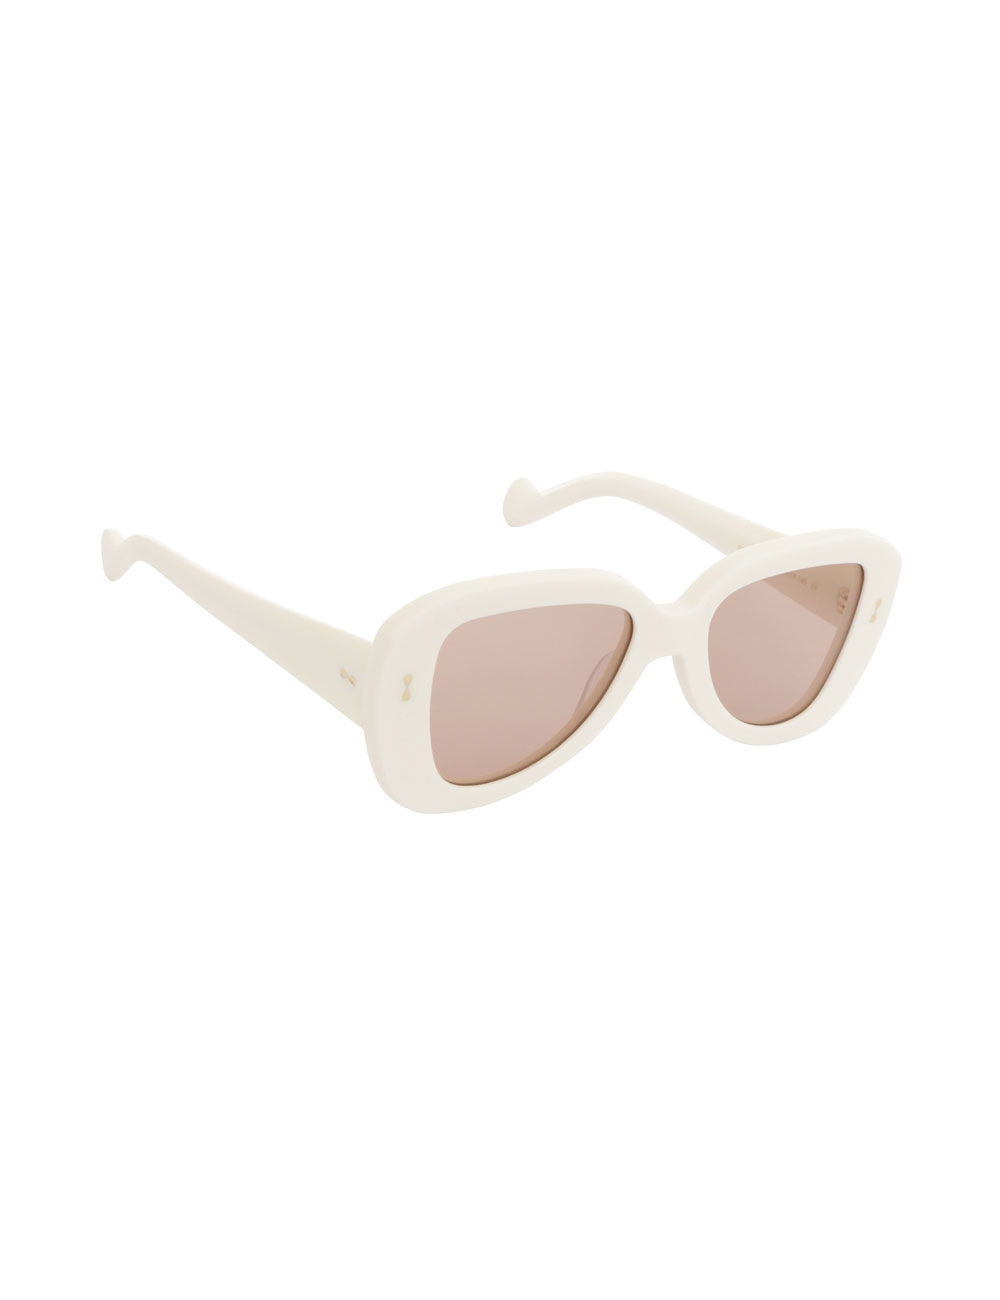 Juno Sunglasses